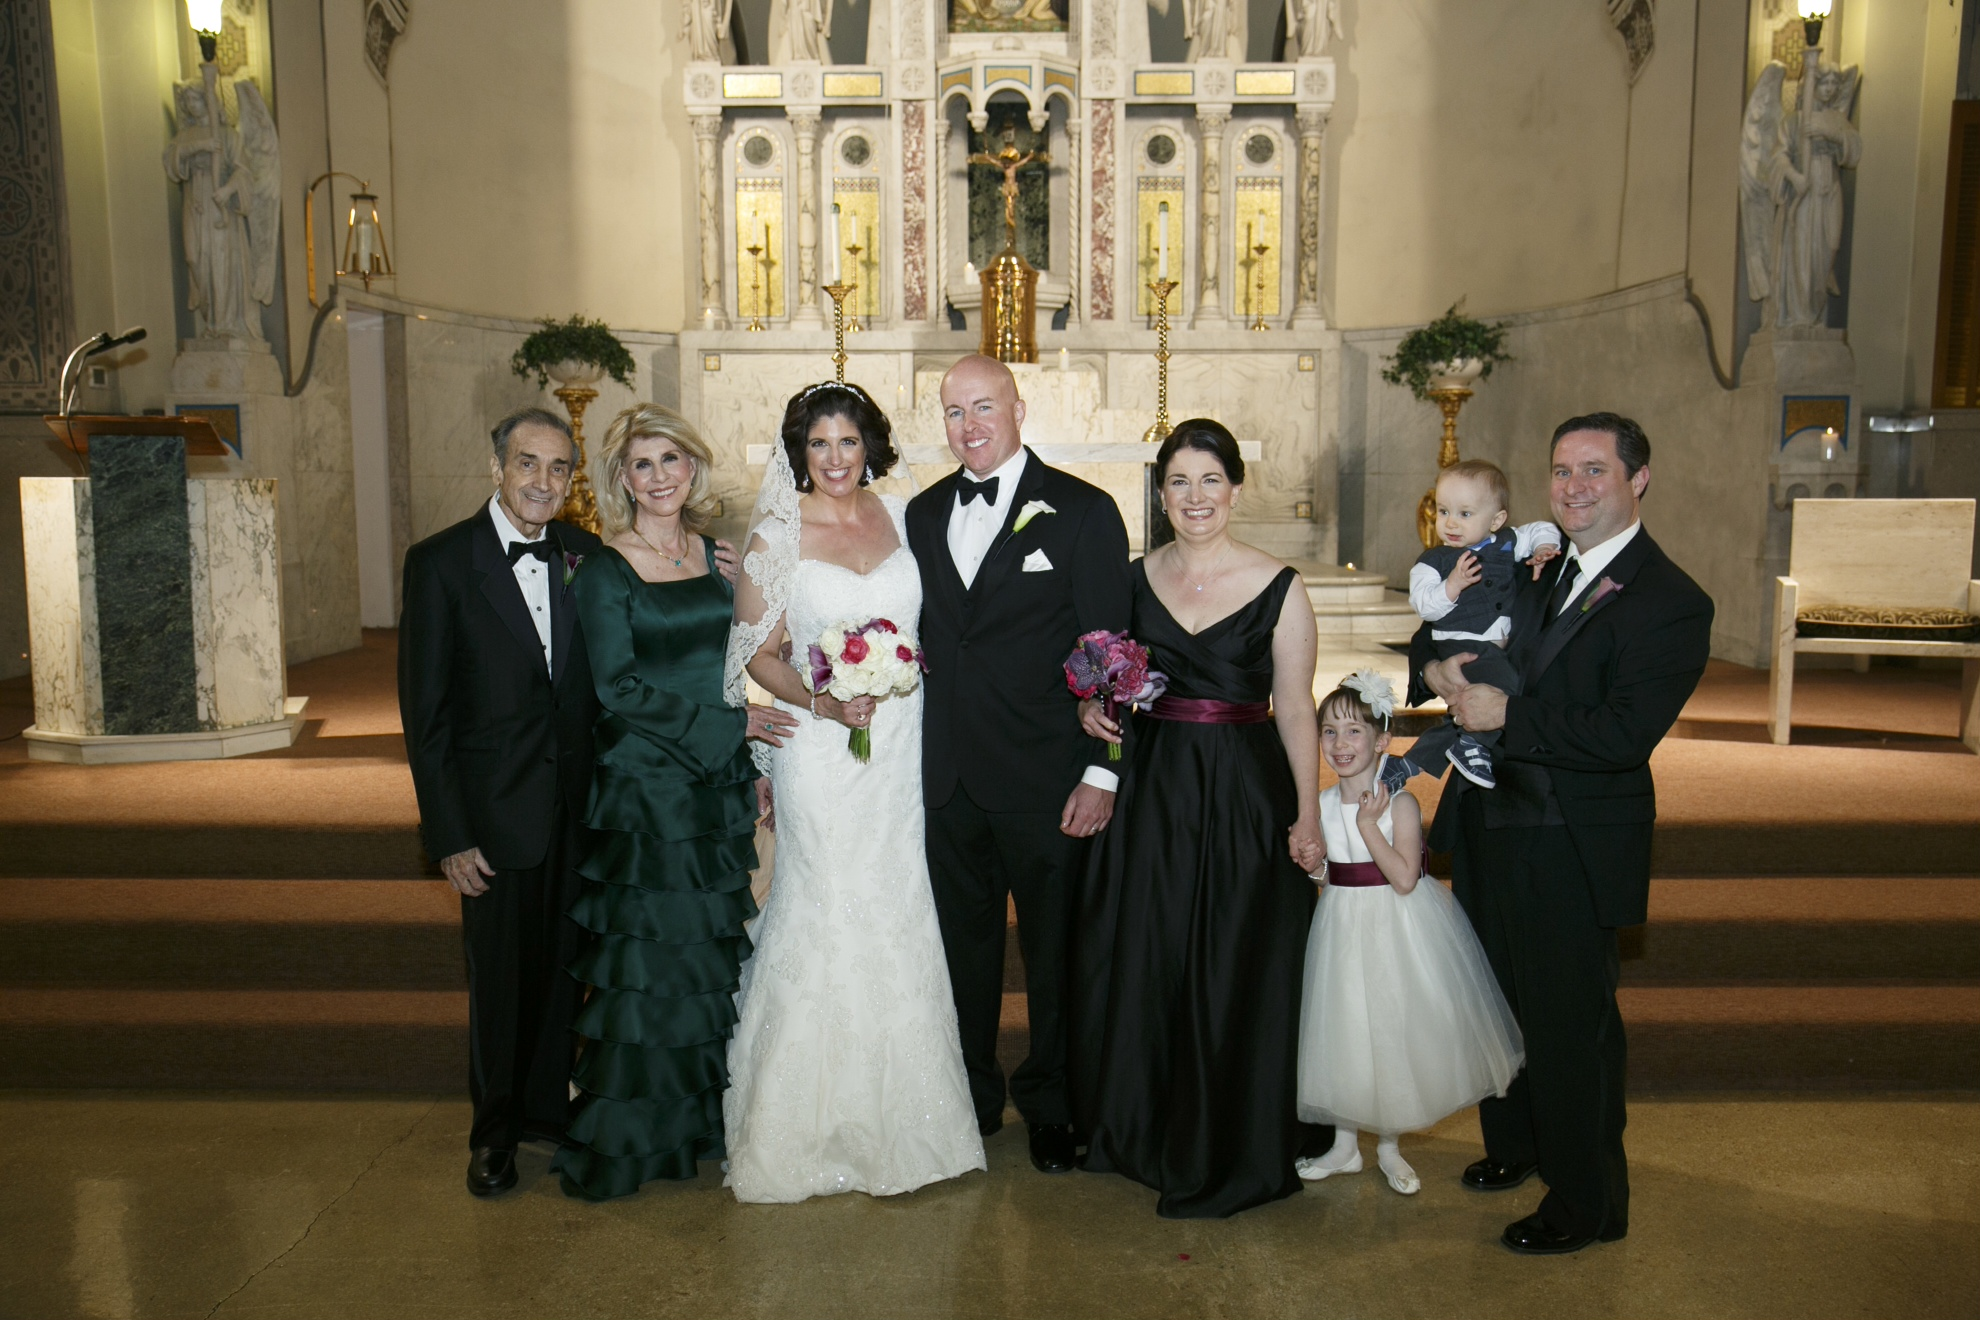 Kathleen Driscoll Amatangelo Class of 1958 posing on the altar with her family at her daughter Holly's wedding at the Shrine of Our Lady of Pompii in Chicago, Illinois.